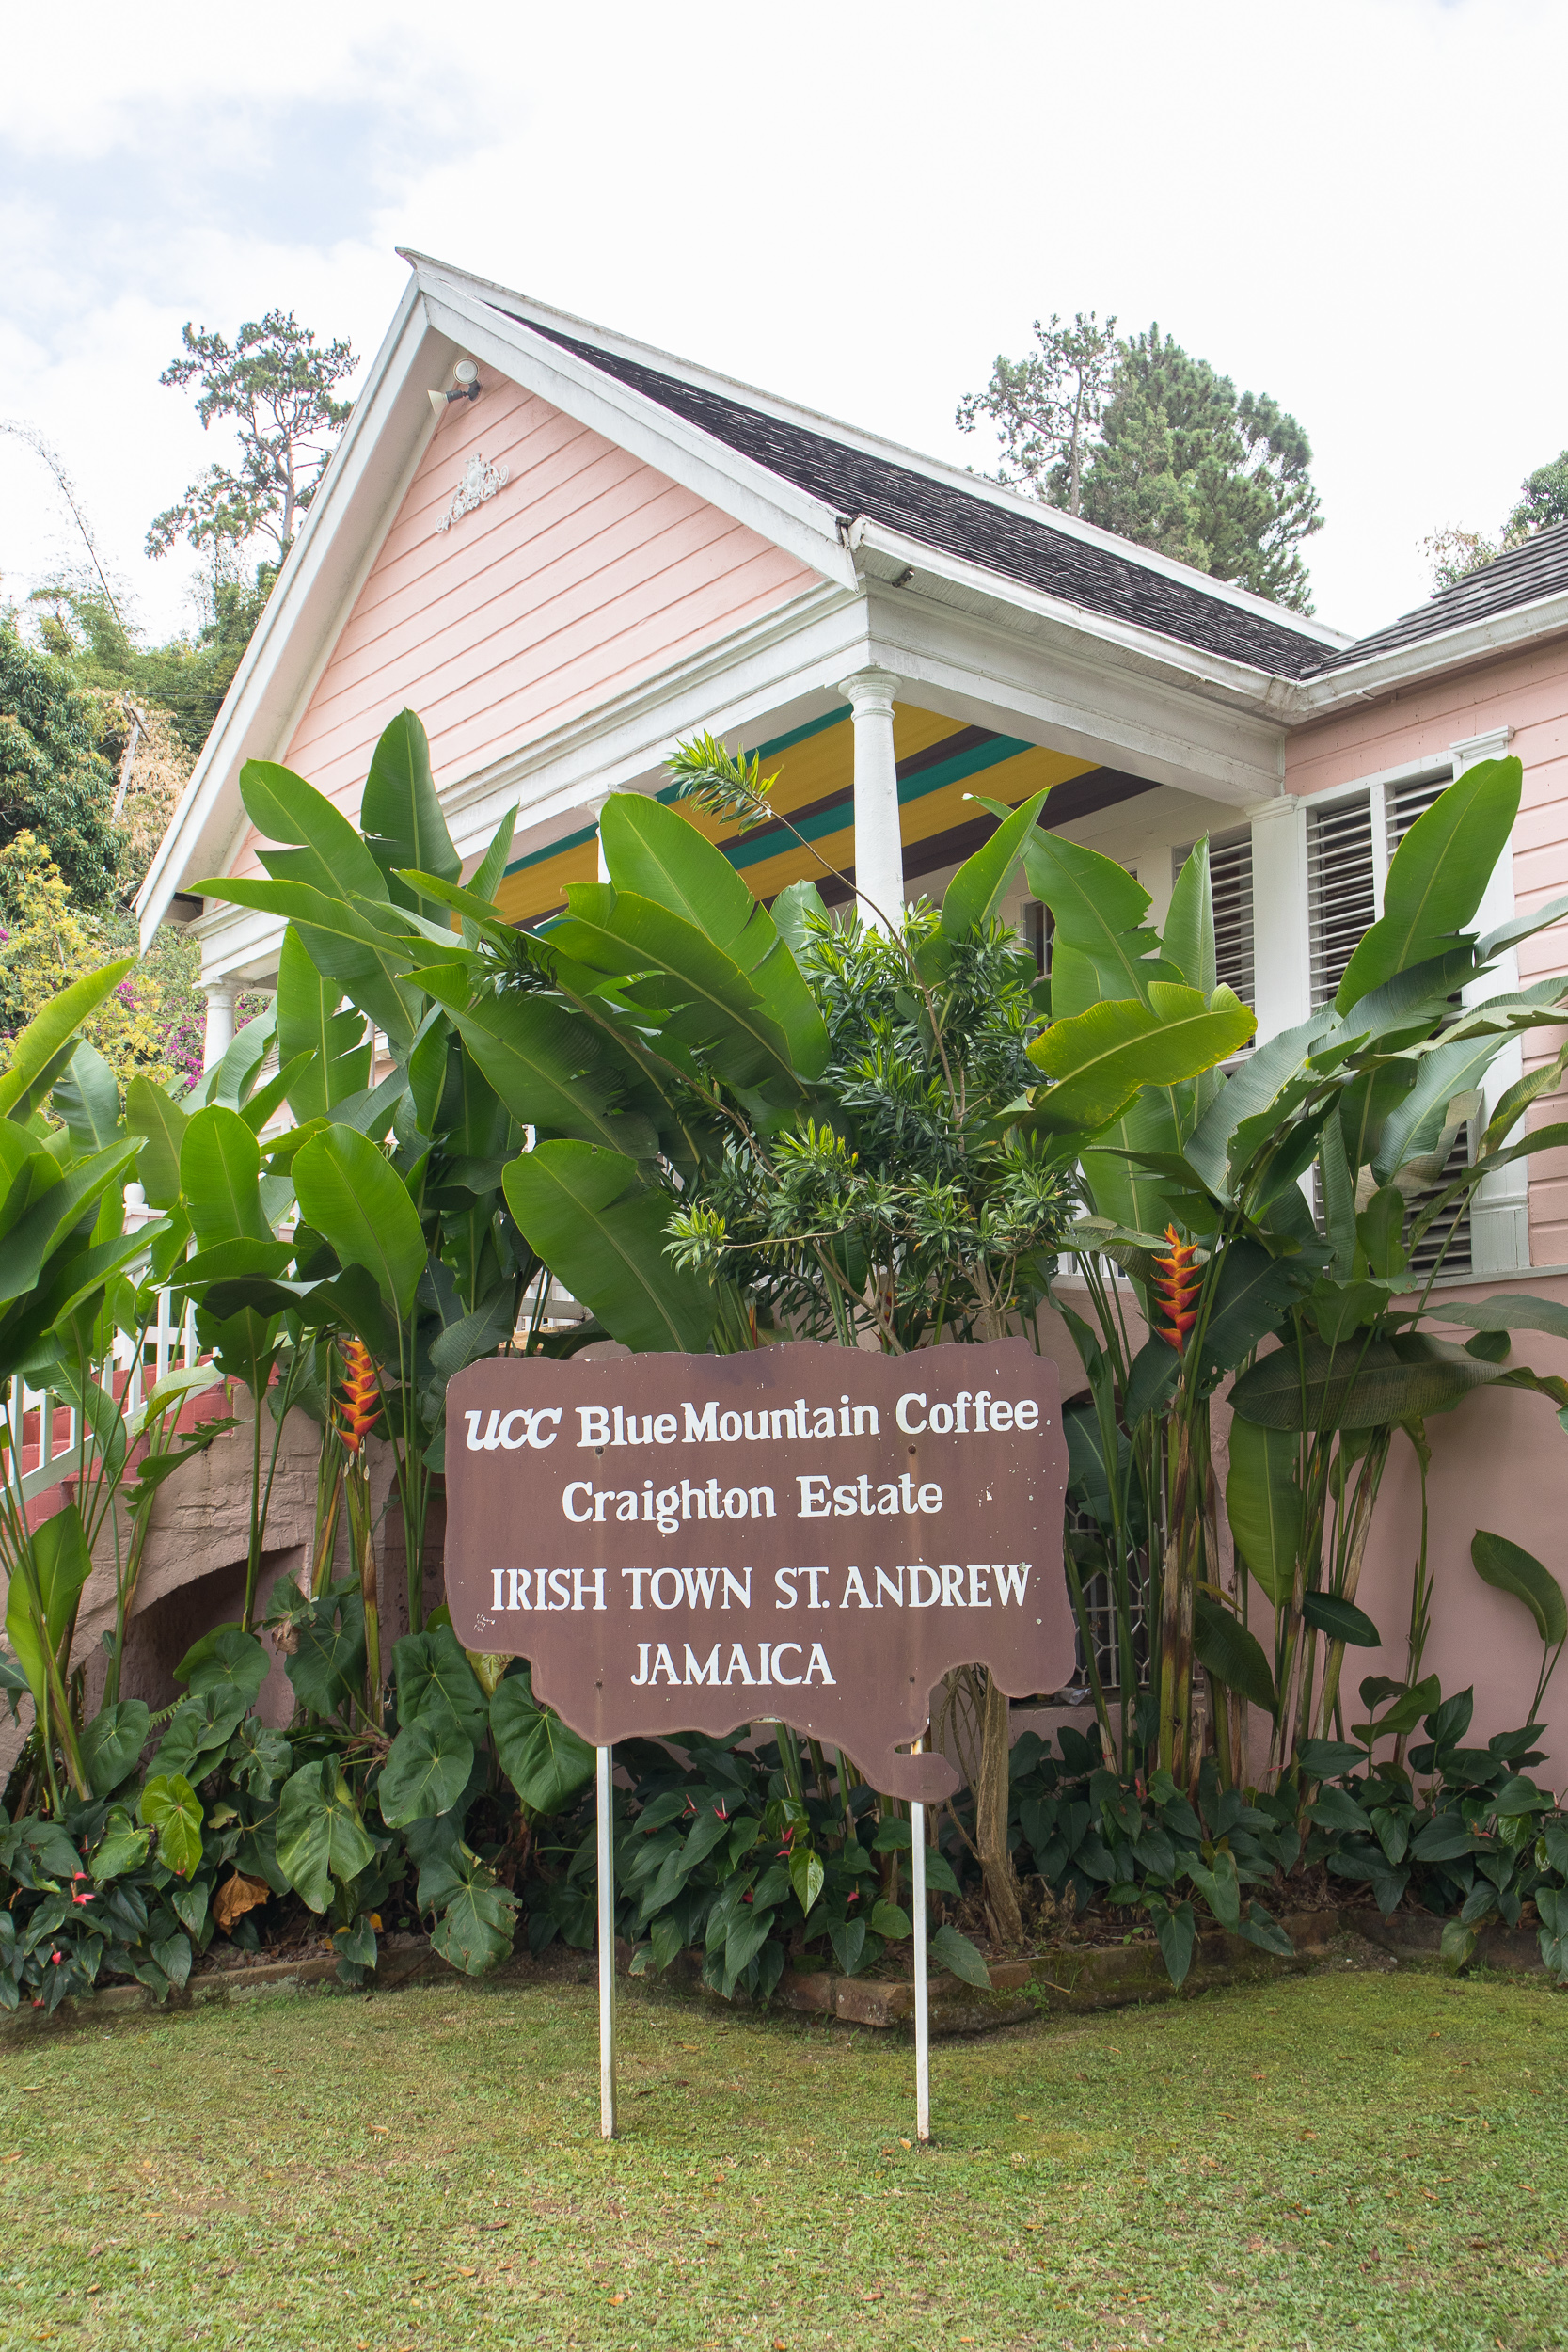 Craighton Estate Blue Mountain Coffee Tour Irish Town - Dreaming about a beach holiday in Jamaica? Travel blogger Kristabel Plummer reveals why you should spend some time in t